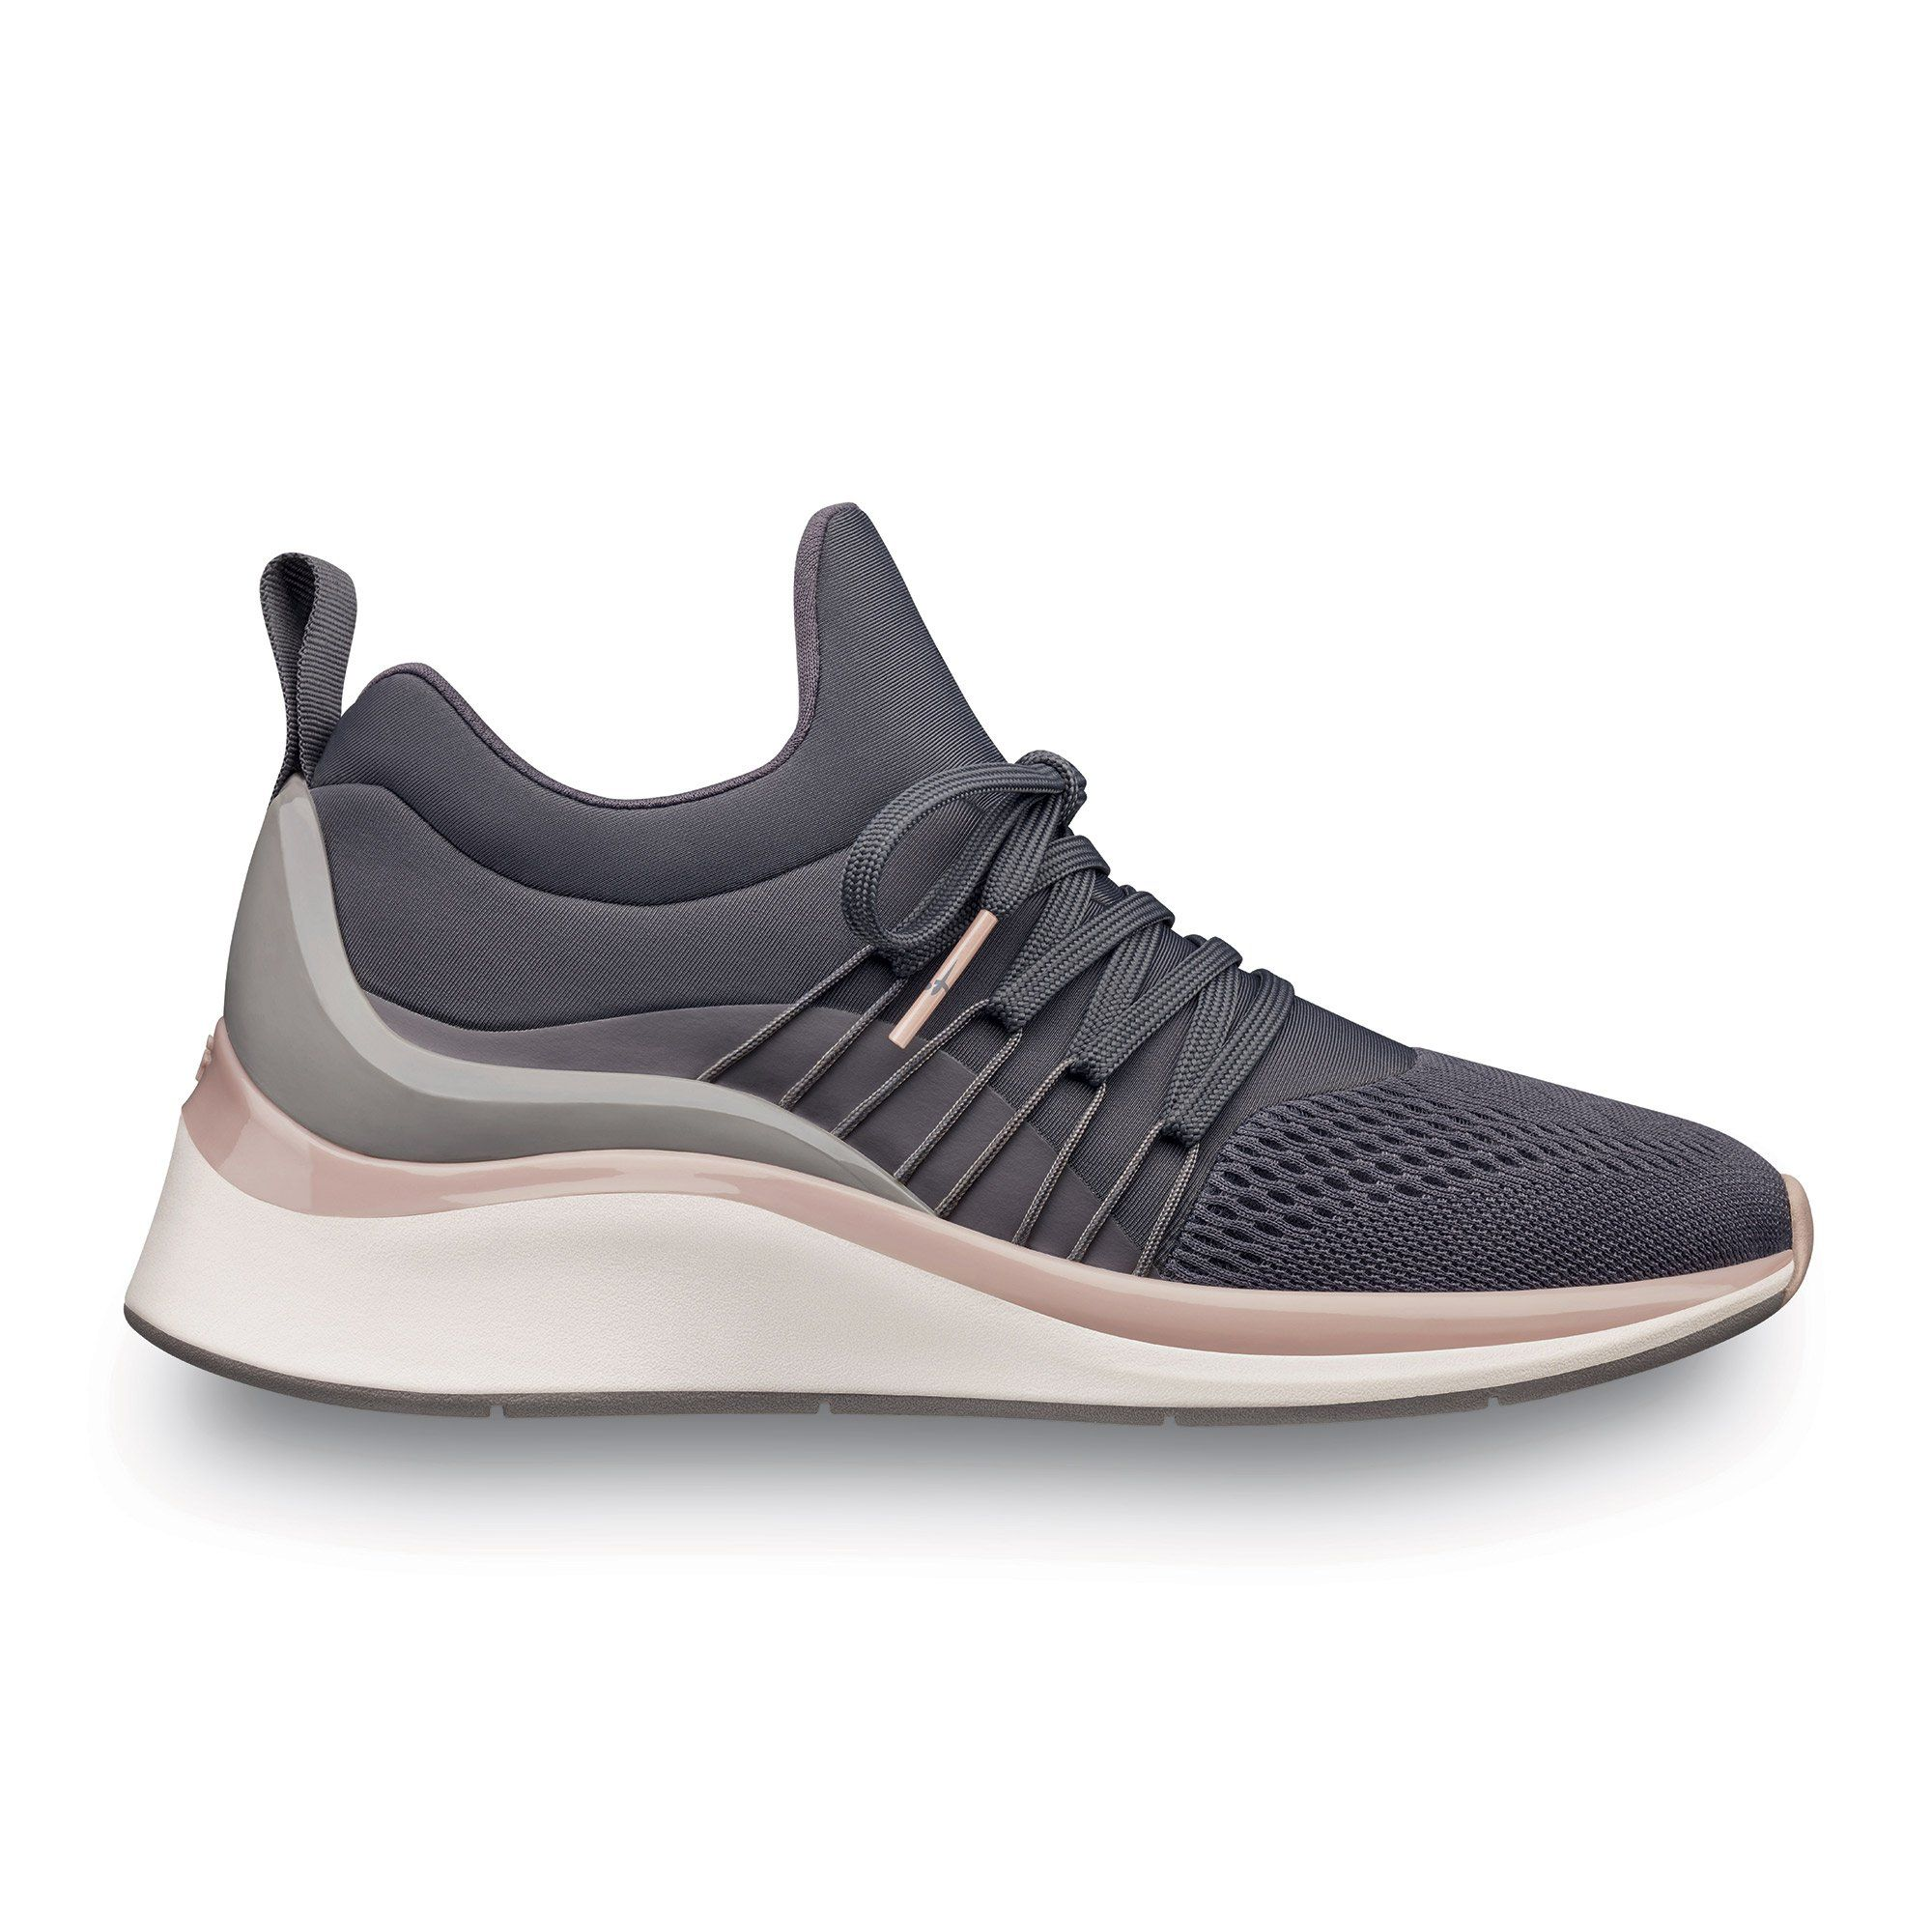 cheap for discount 20542 d4f43 Baskets Tamaris, Jogging, Adidas Sneakers, Designer Shoes, Fashion, Winter  Trends,